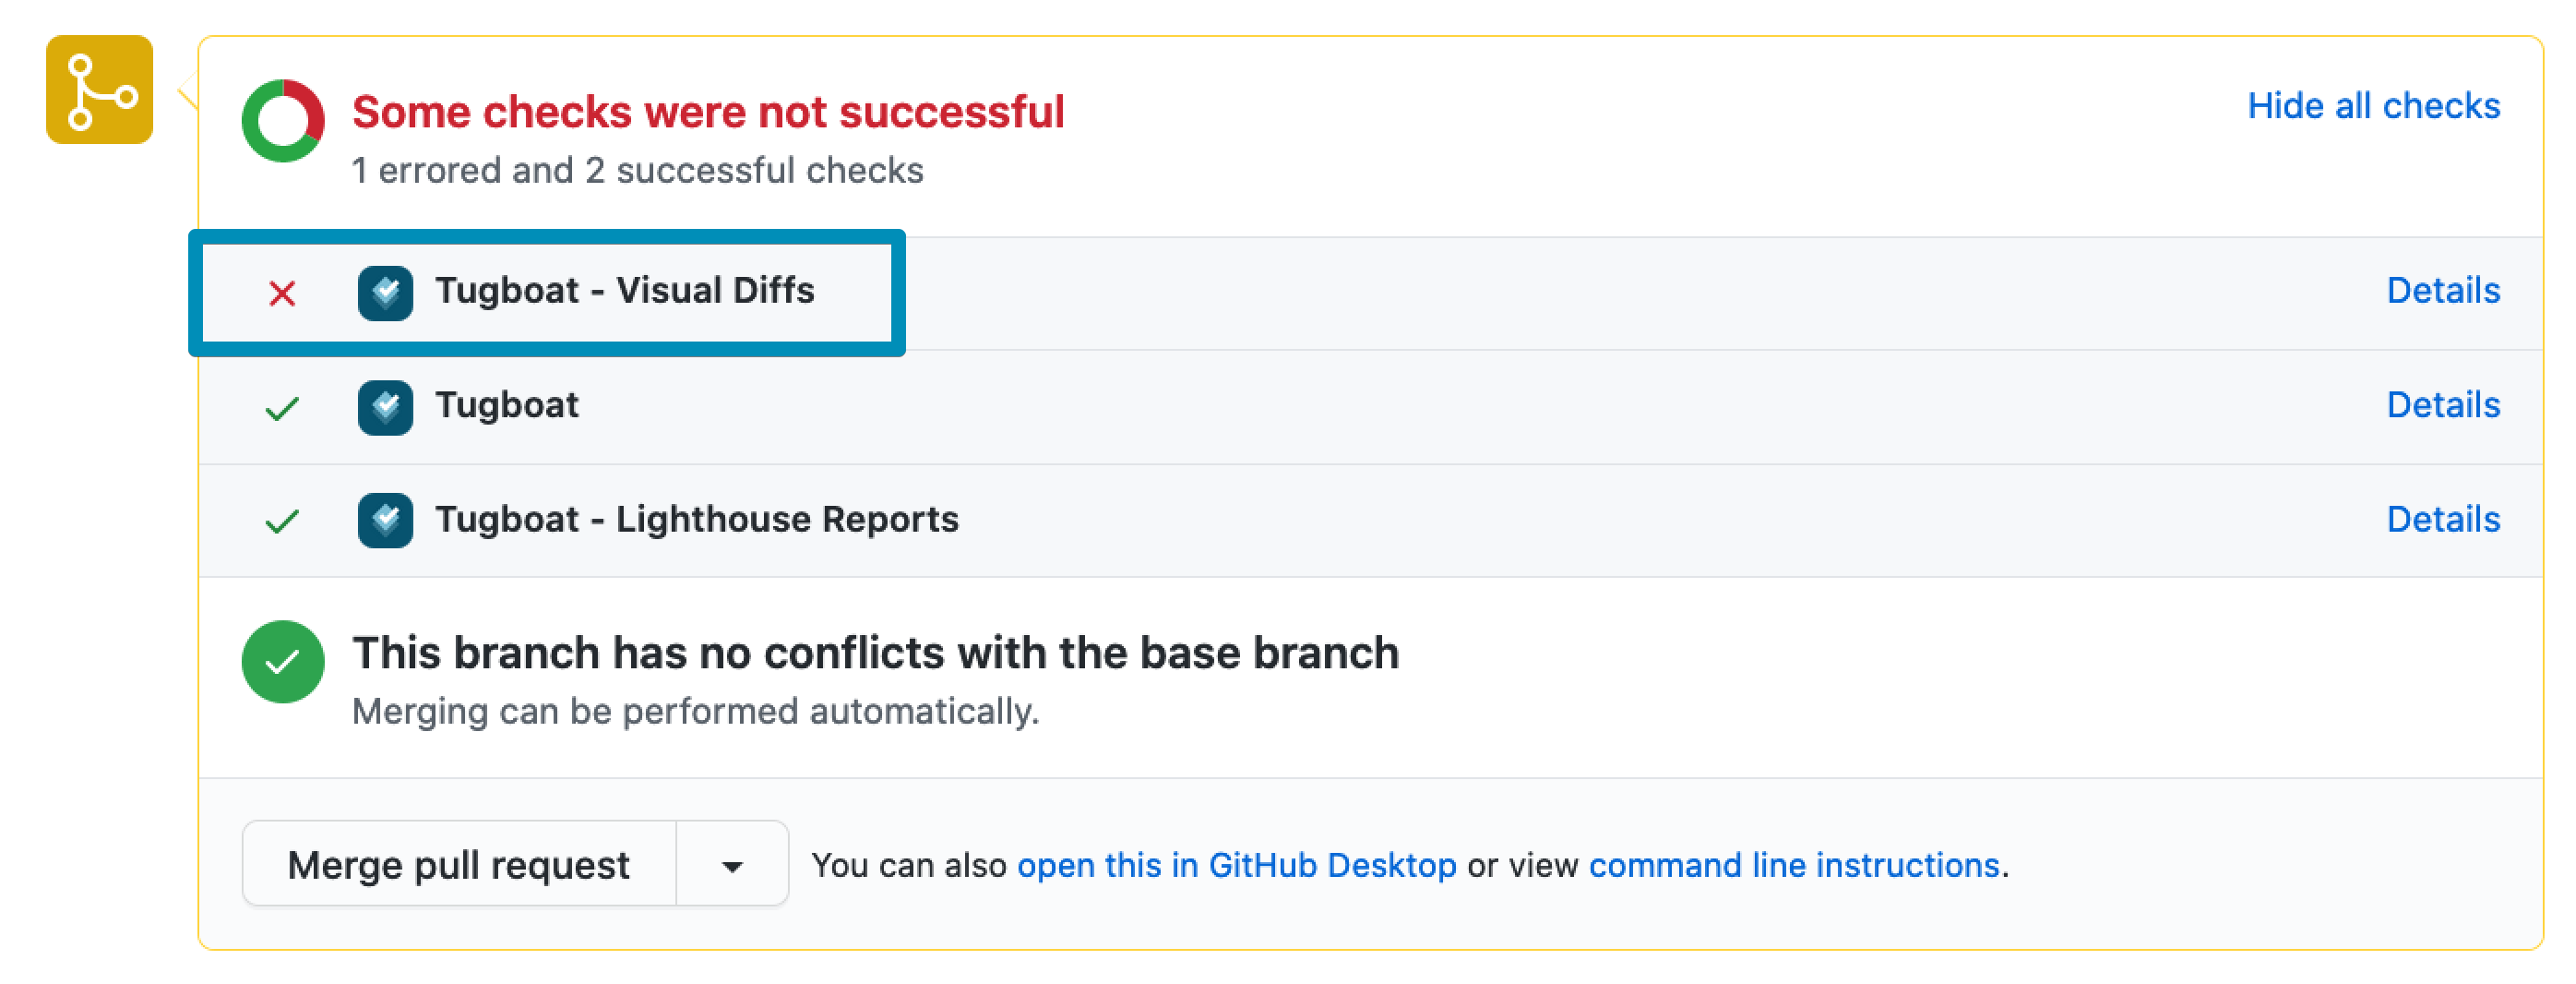 A screenshot of a pull request on GitHub, highlighting a failed visual regression test result from Tugboat.